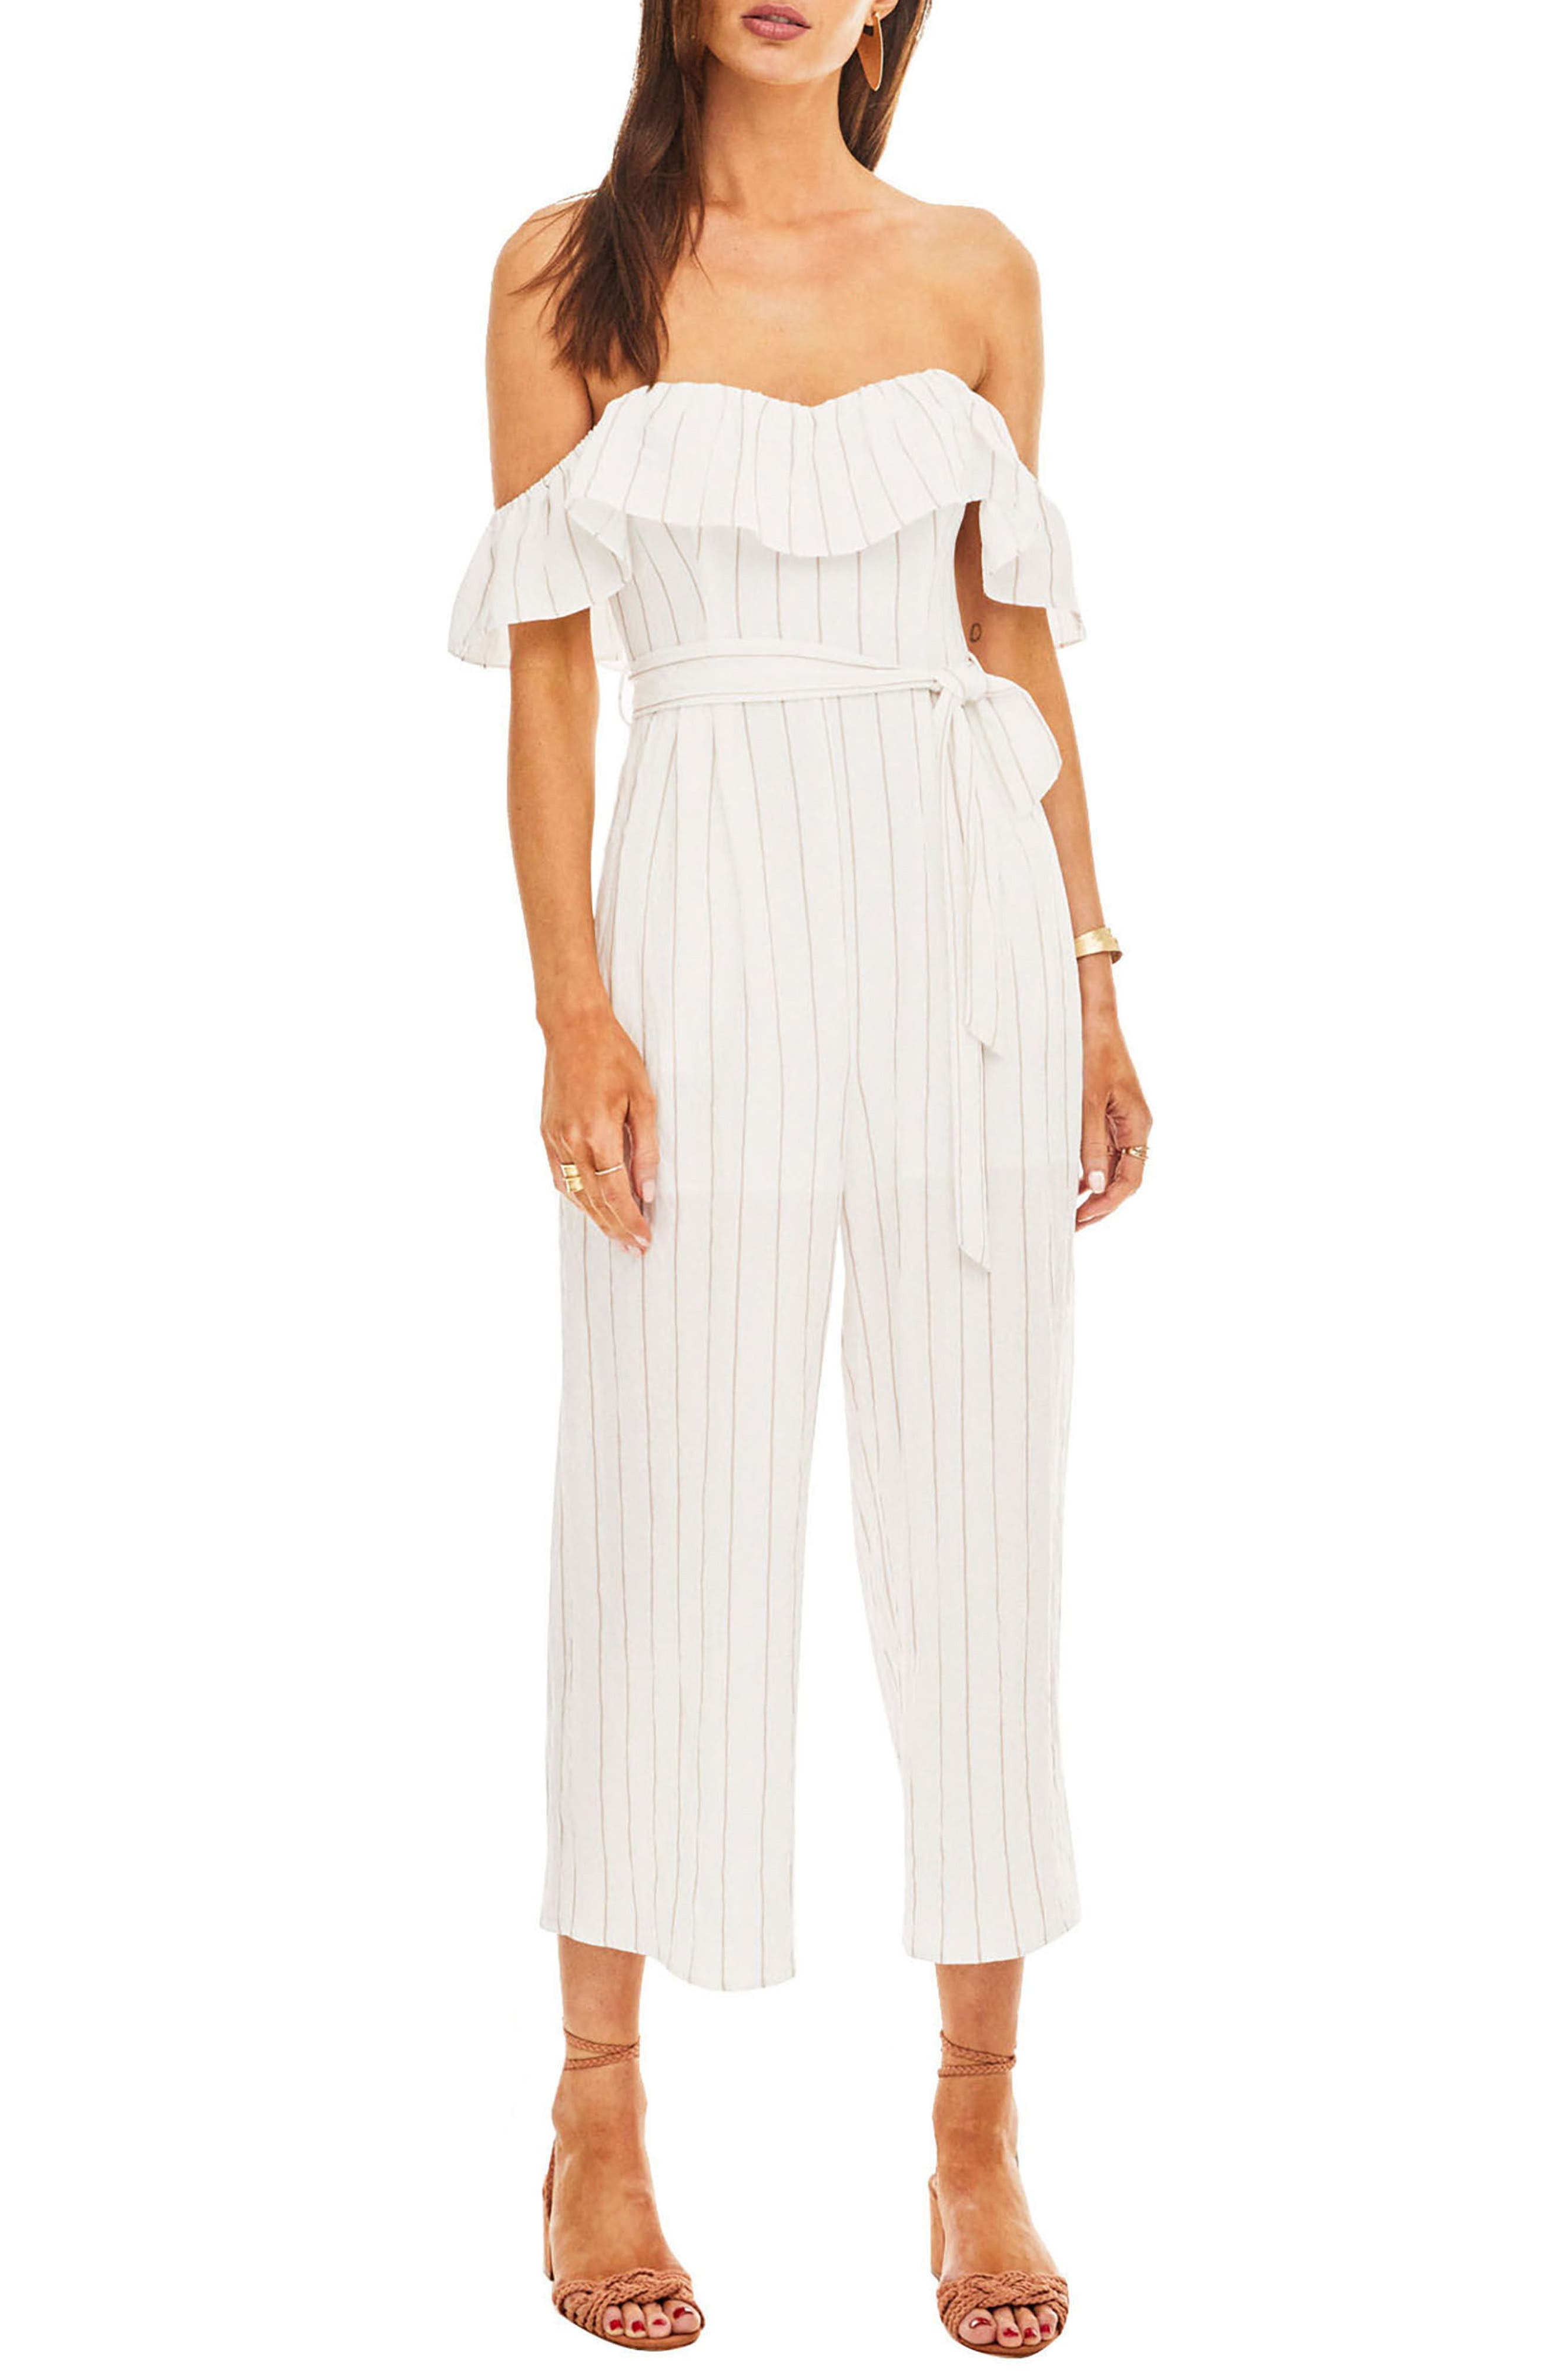 ASTR Keely Strapless Jumpsuit,                         Main,                         color, White-Taupe Stripe